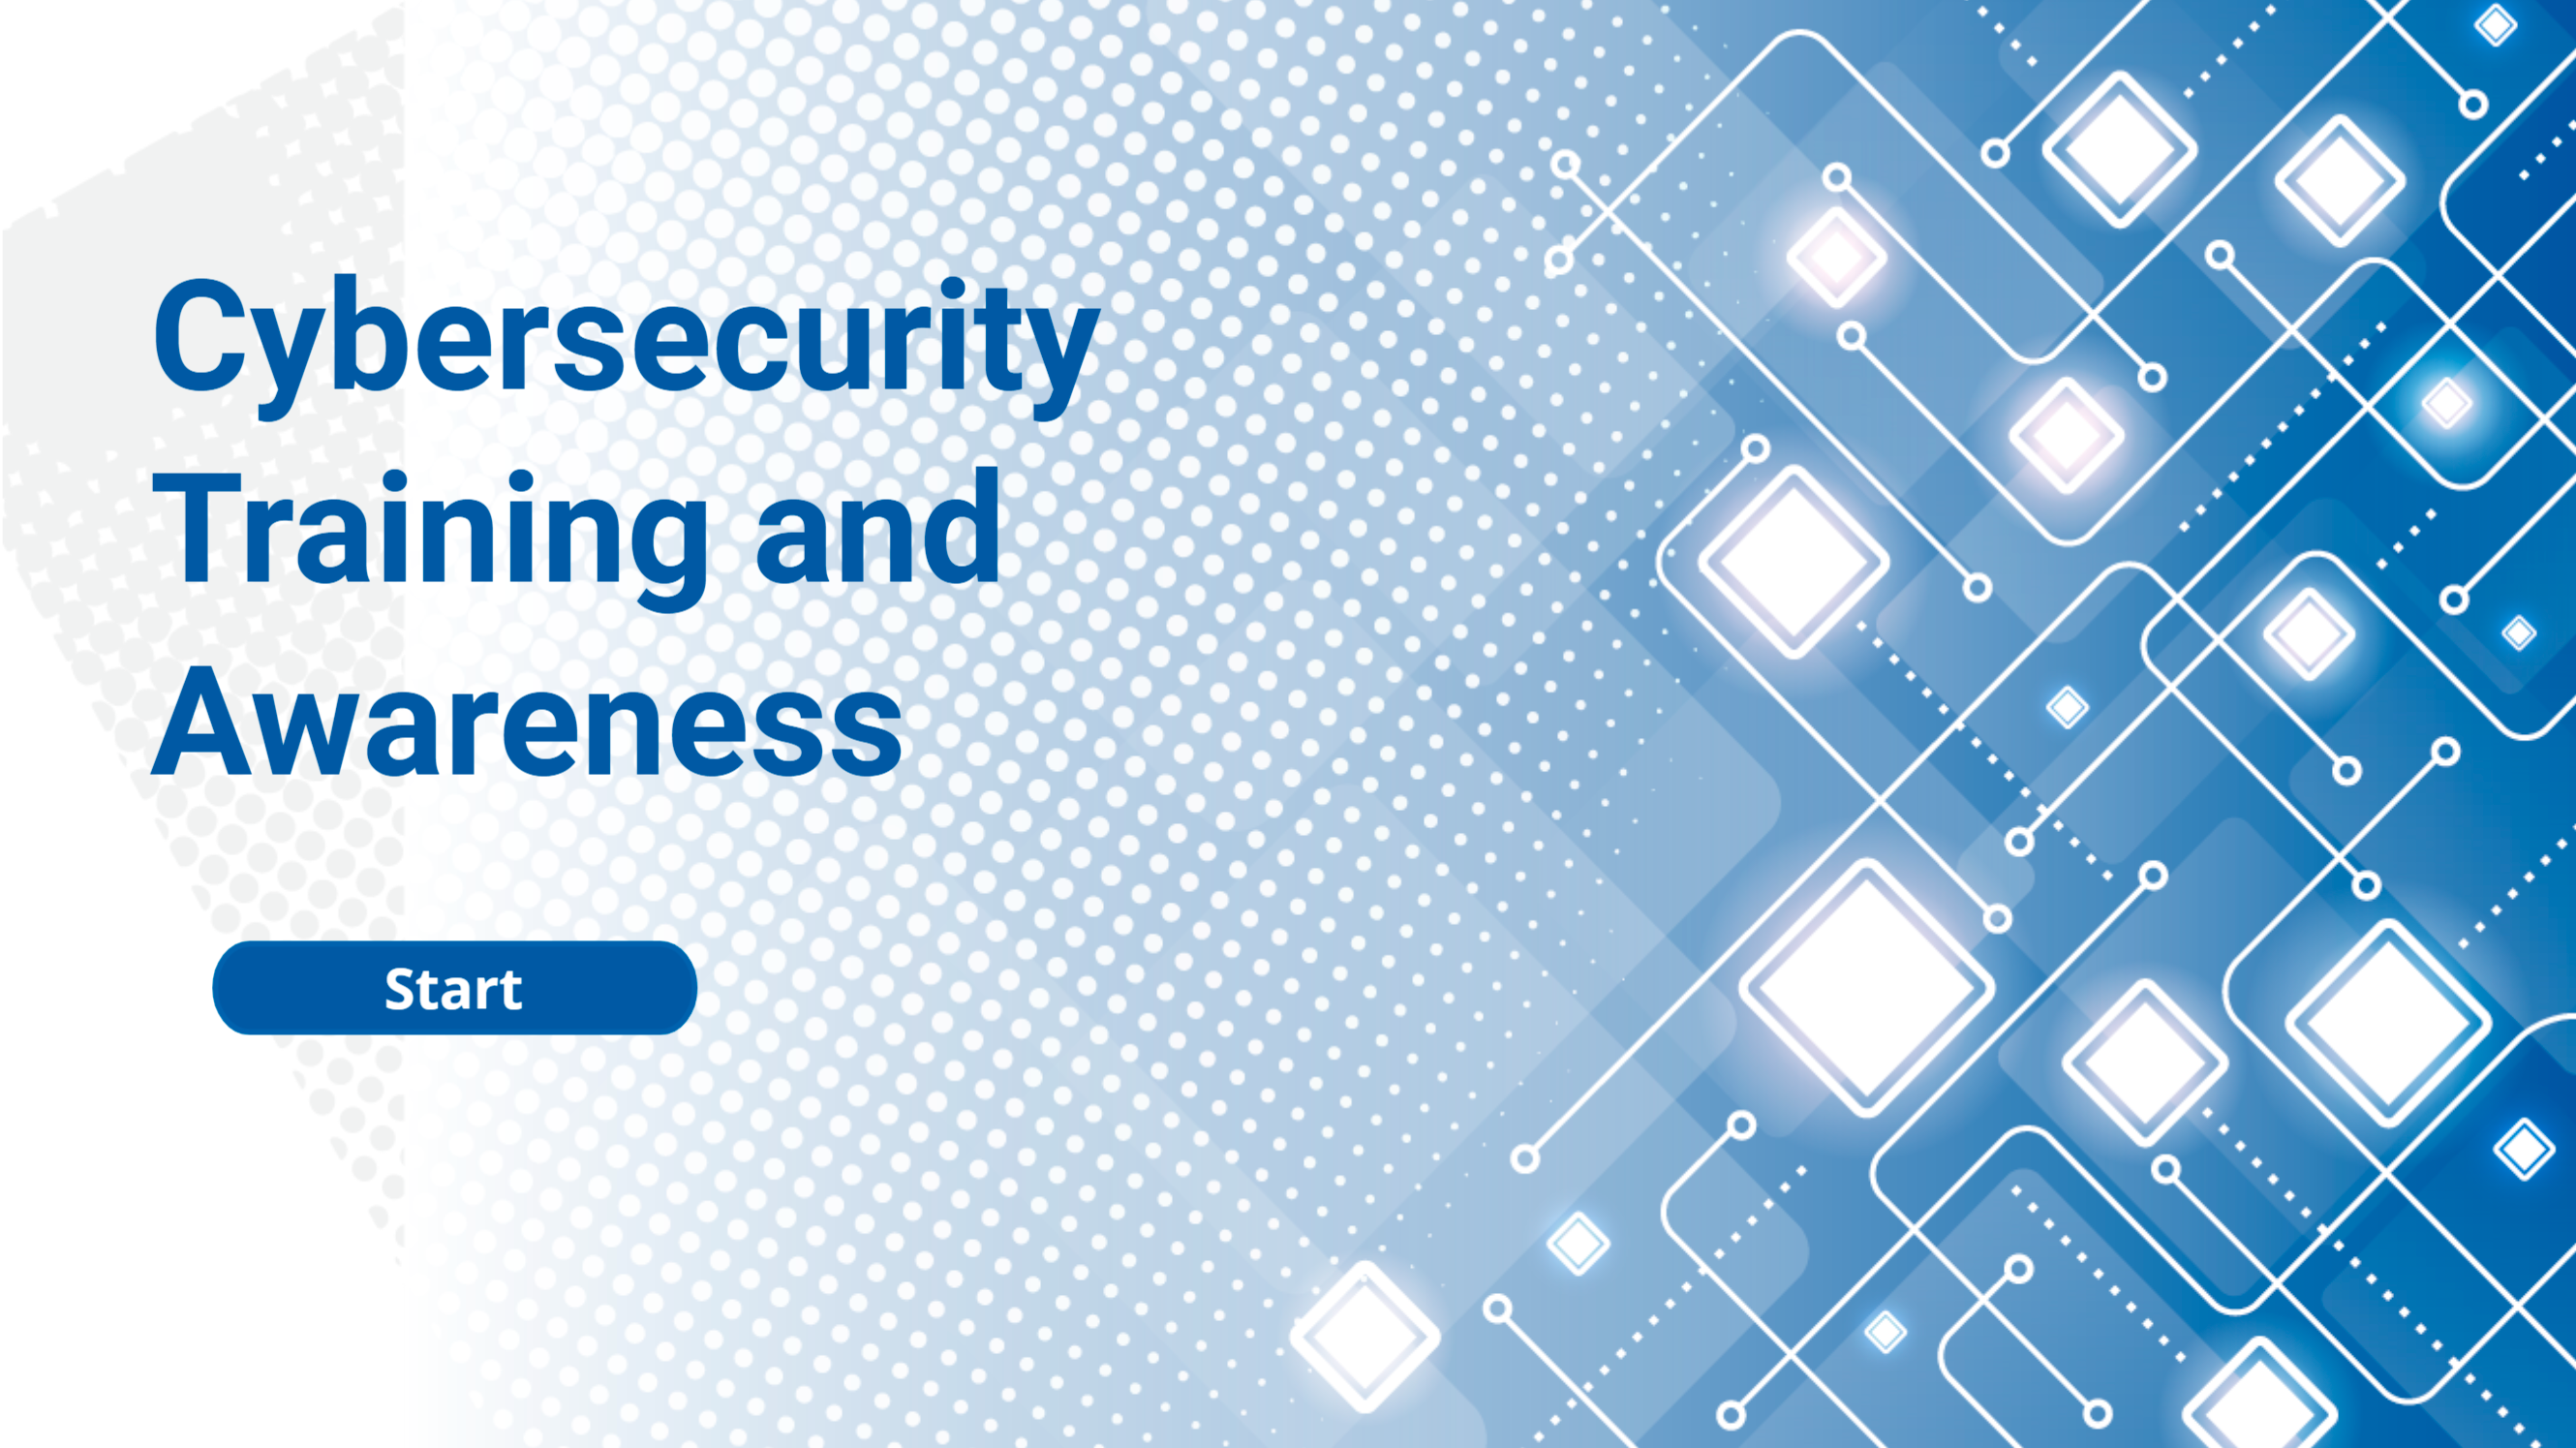 Cyber Security Training and Awareness